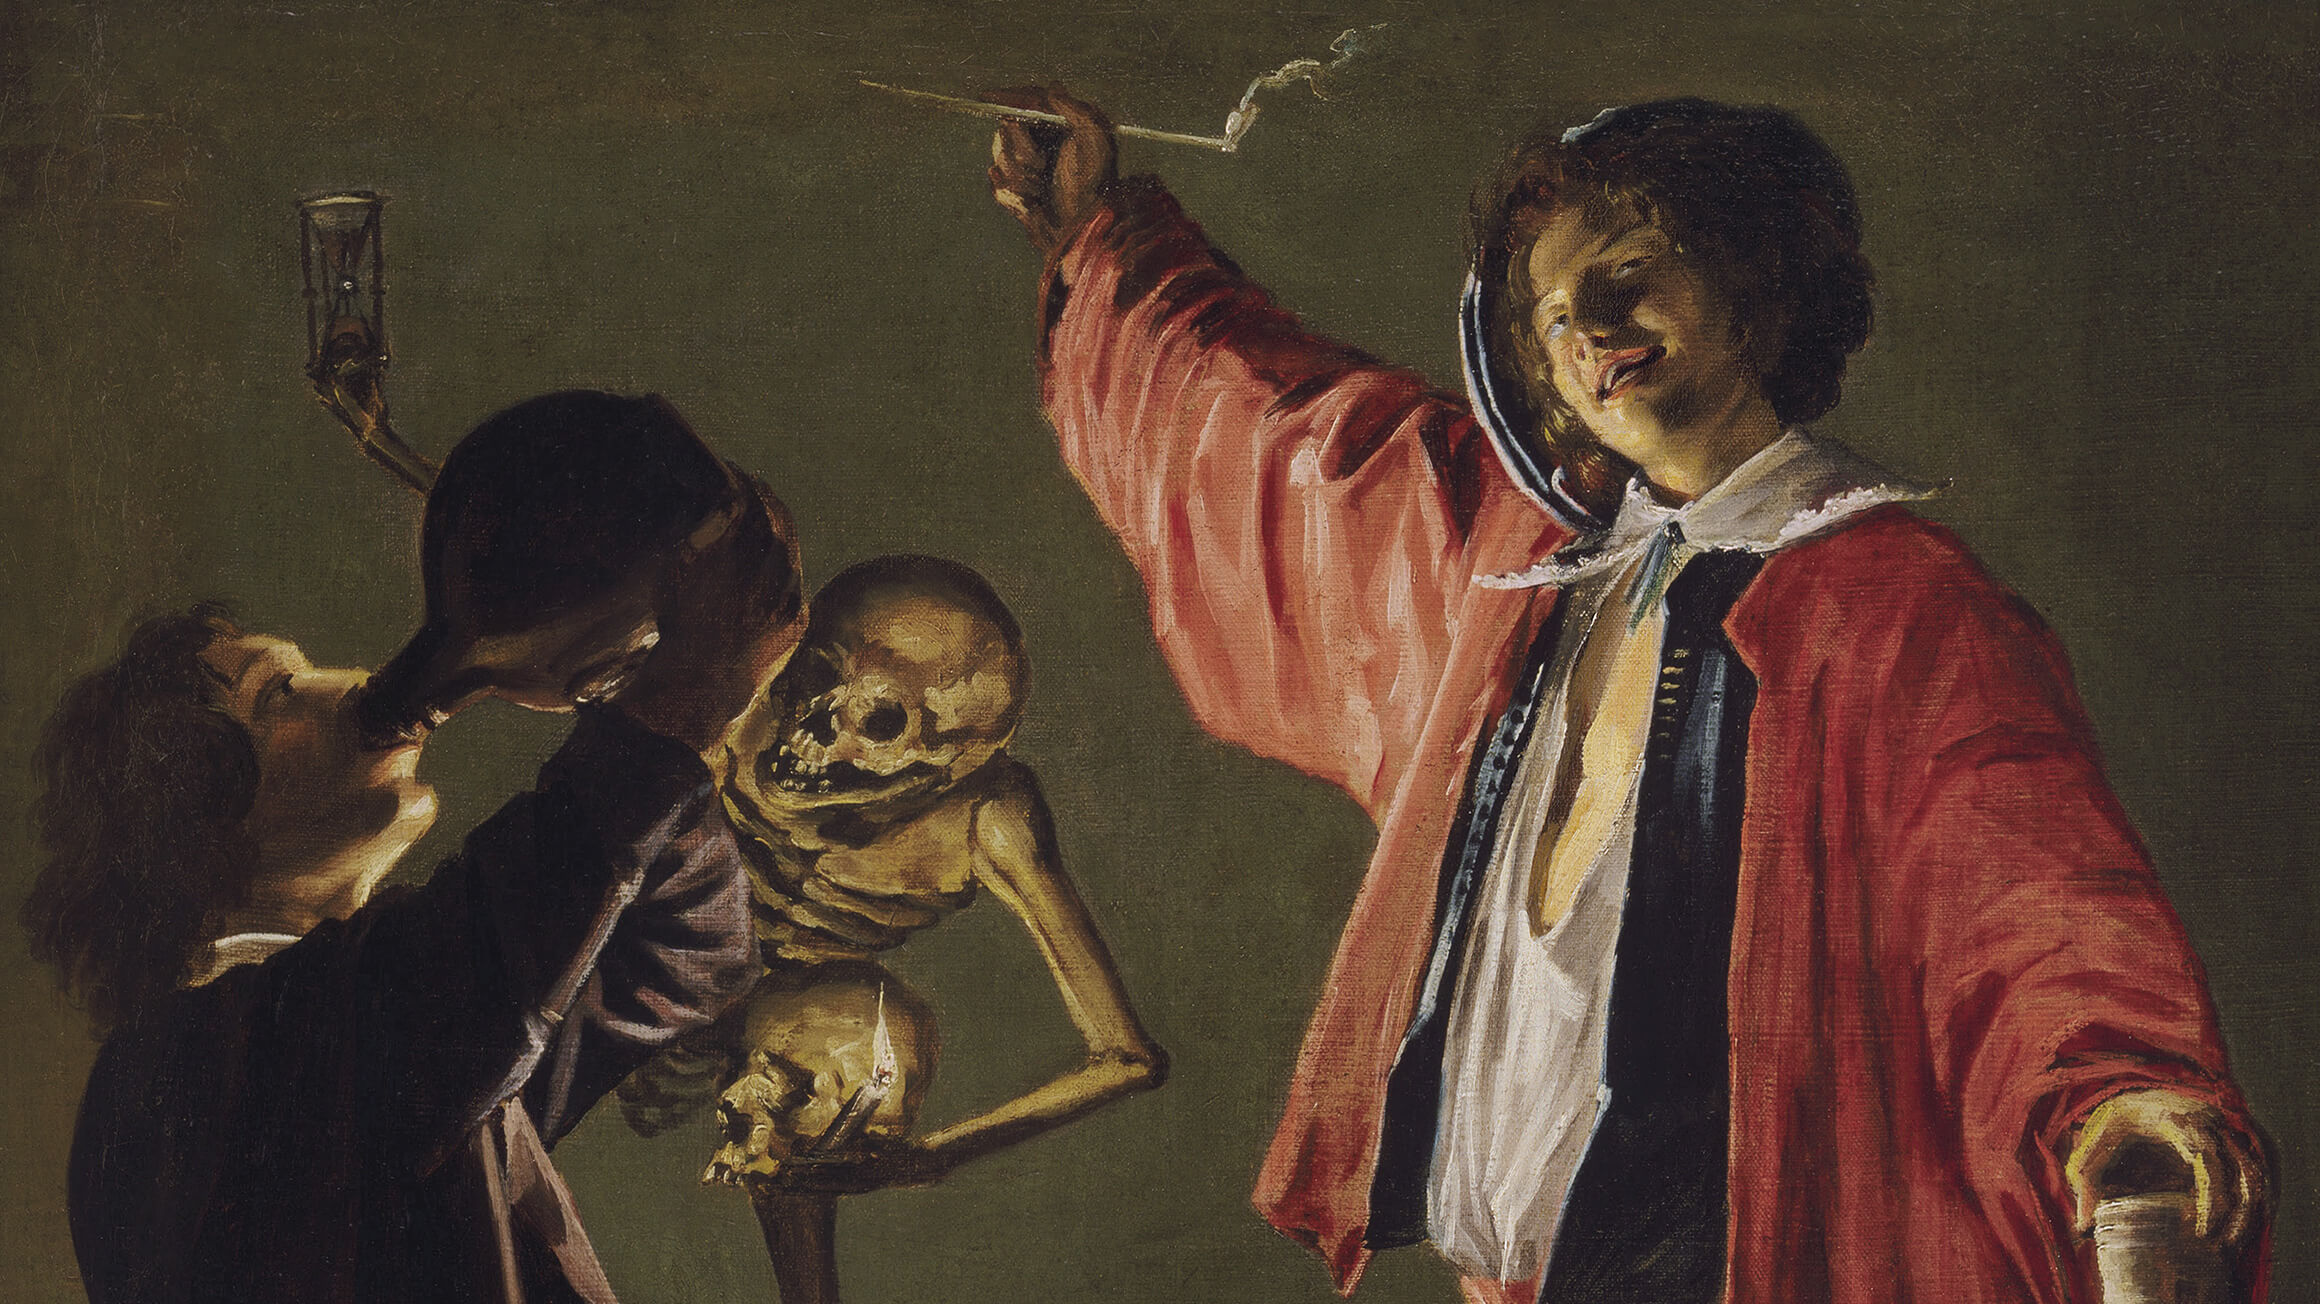 The Last Drop (The Gay Cavalier) (detail), c. 1629, by Judith Leyster (Dutch, 1609–1660), Cat. 440